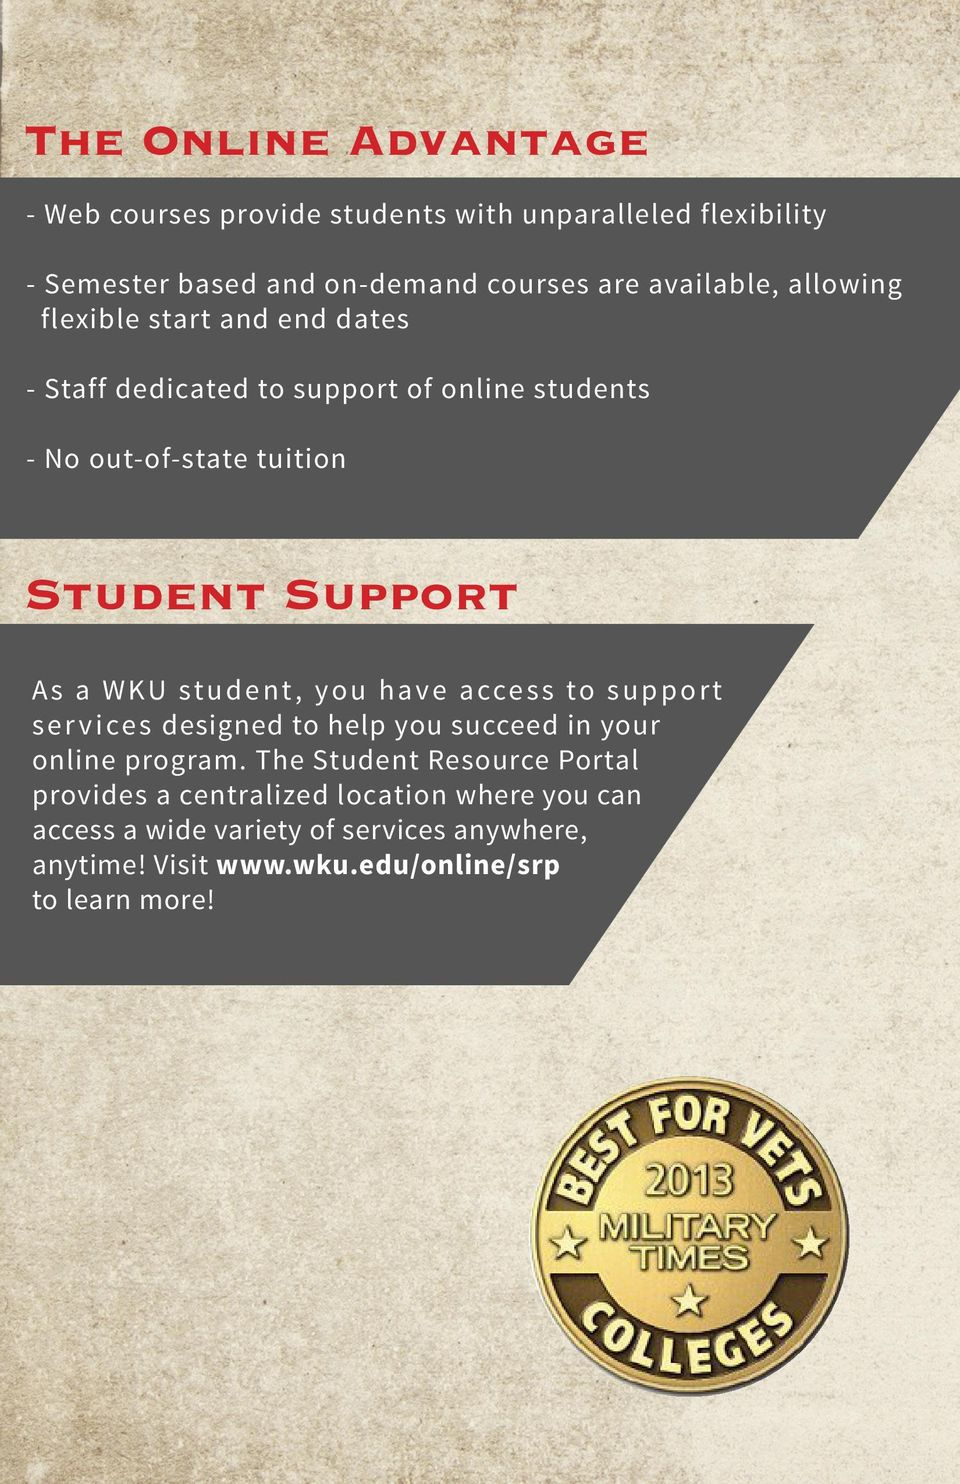 WKU student, you have access to support services designed to help you succeed in your online program.